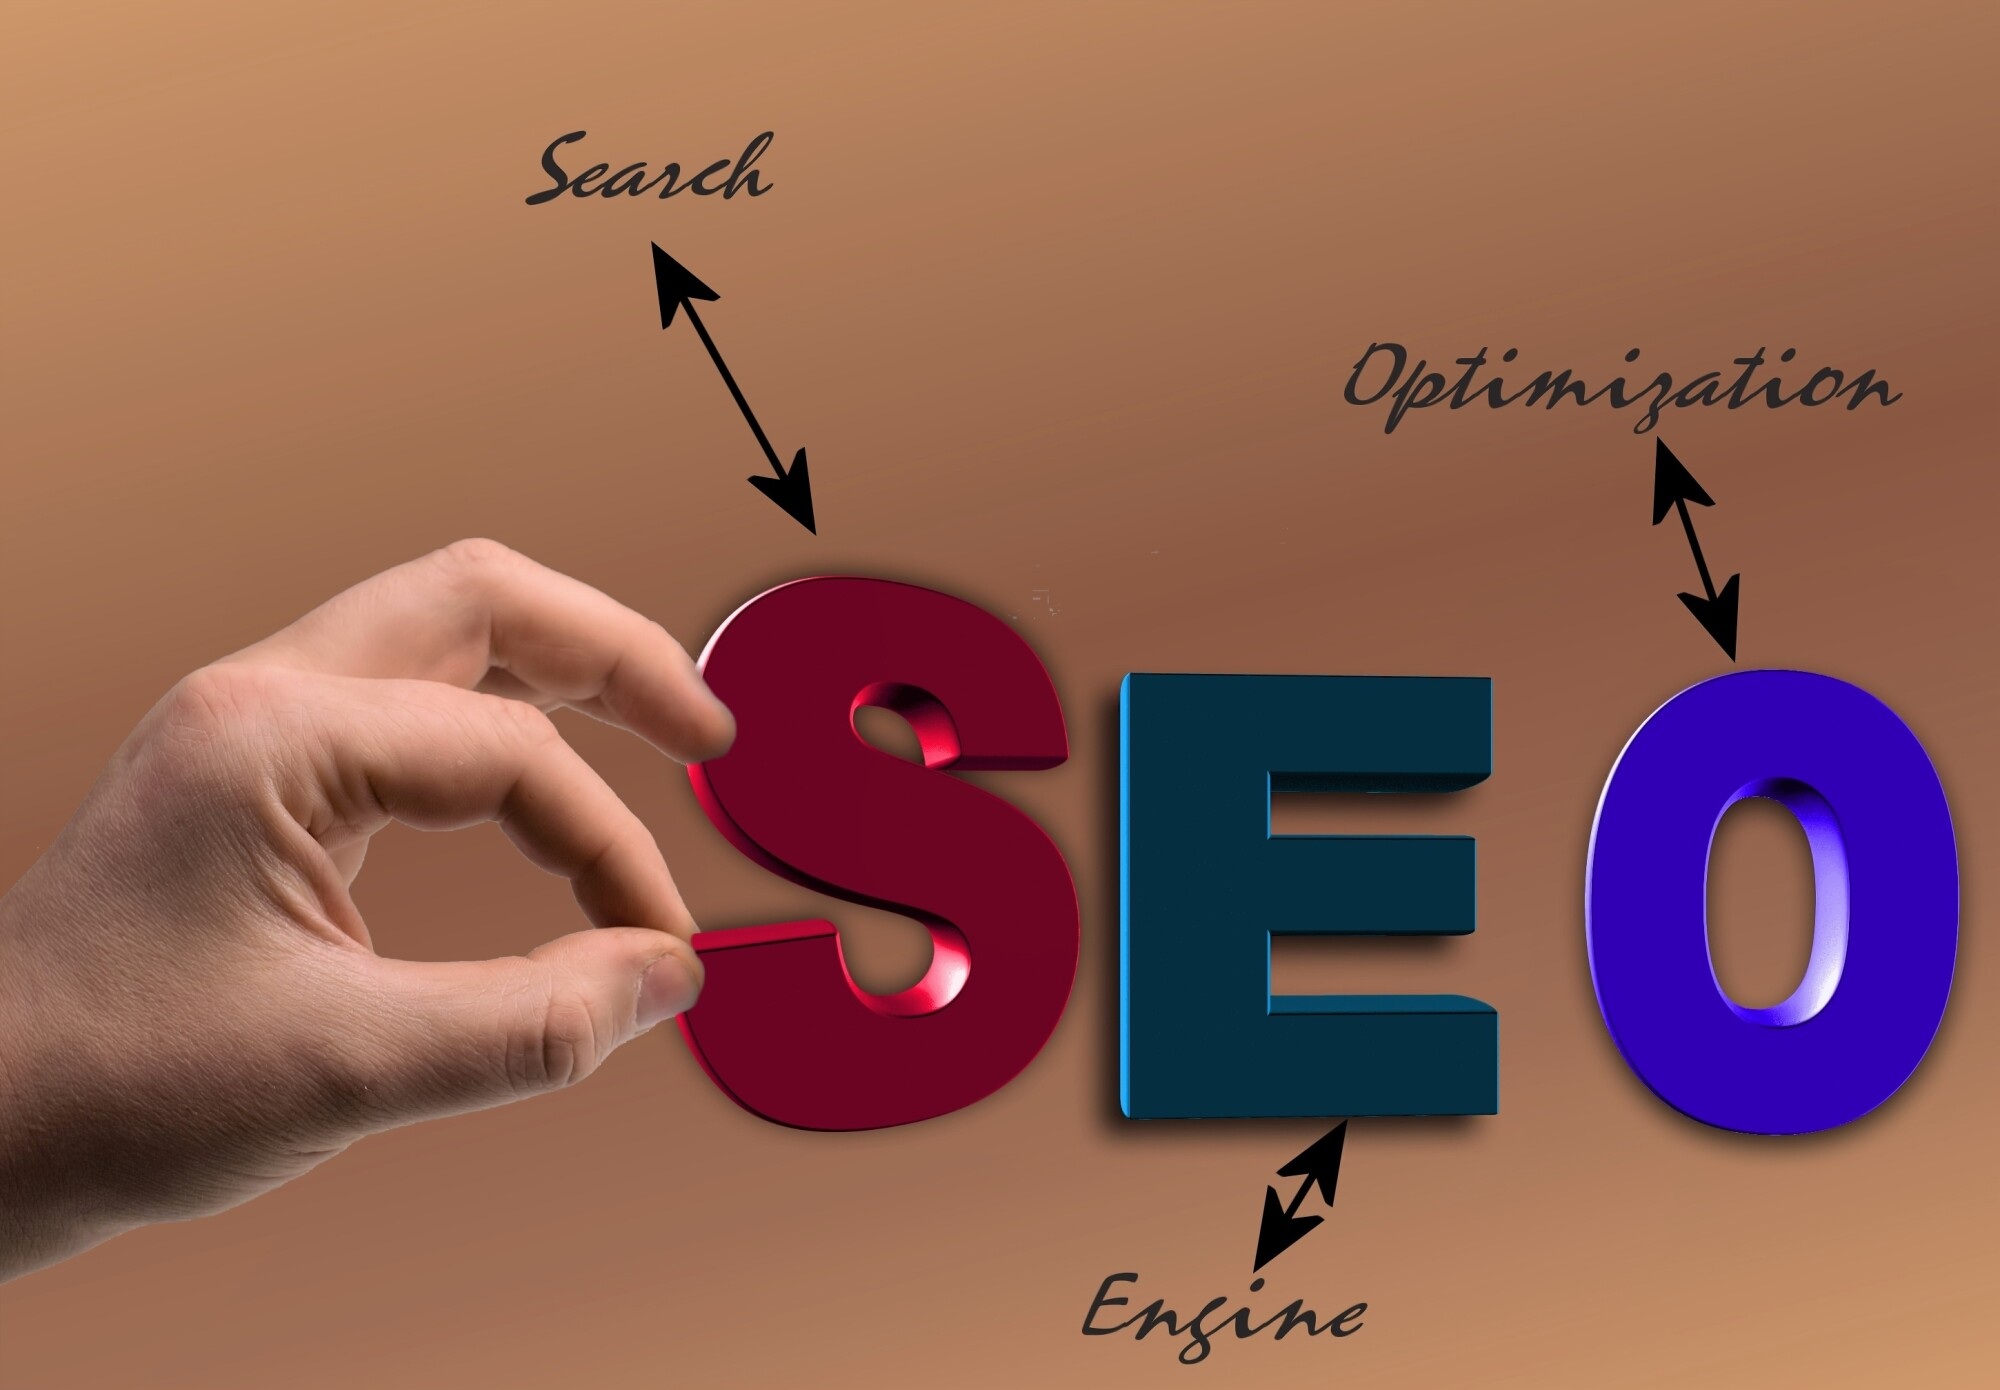 The Different Types of Search Engine Optimization Explained